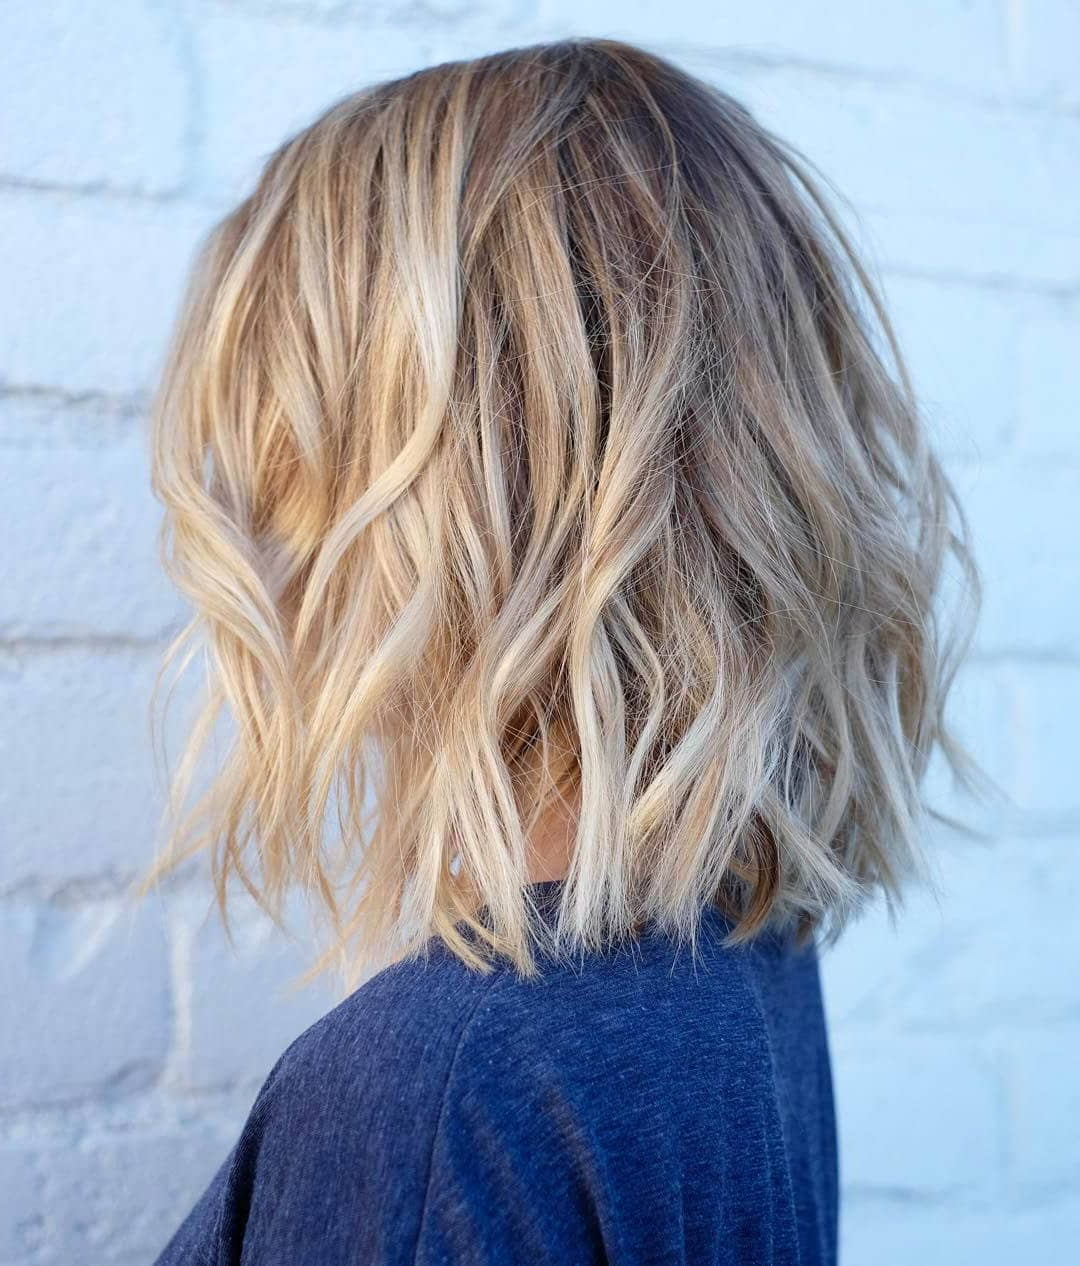 50 Fresh Short Blonde Hair Ideas To Update Your Style In 2018 With Regard To Straight Textured Angled Bronde Bob Hairstyles (View 8 of 20)